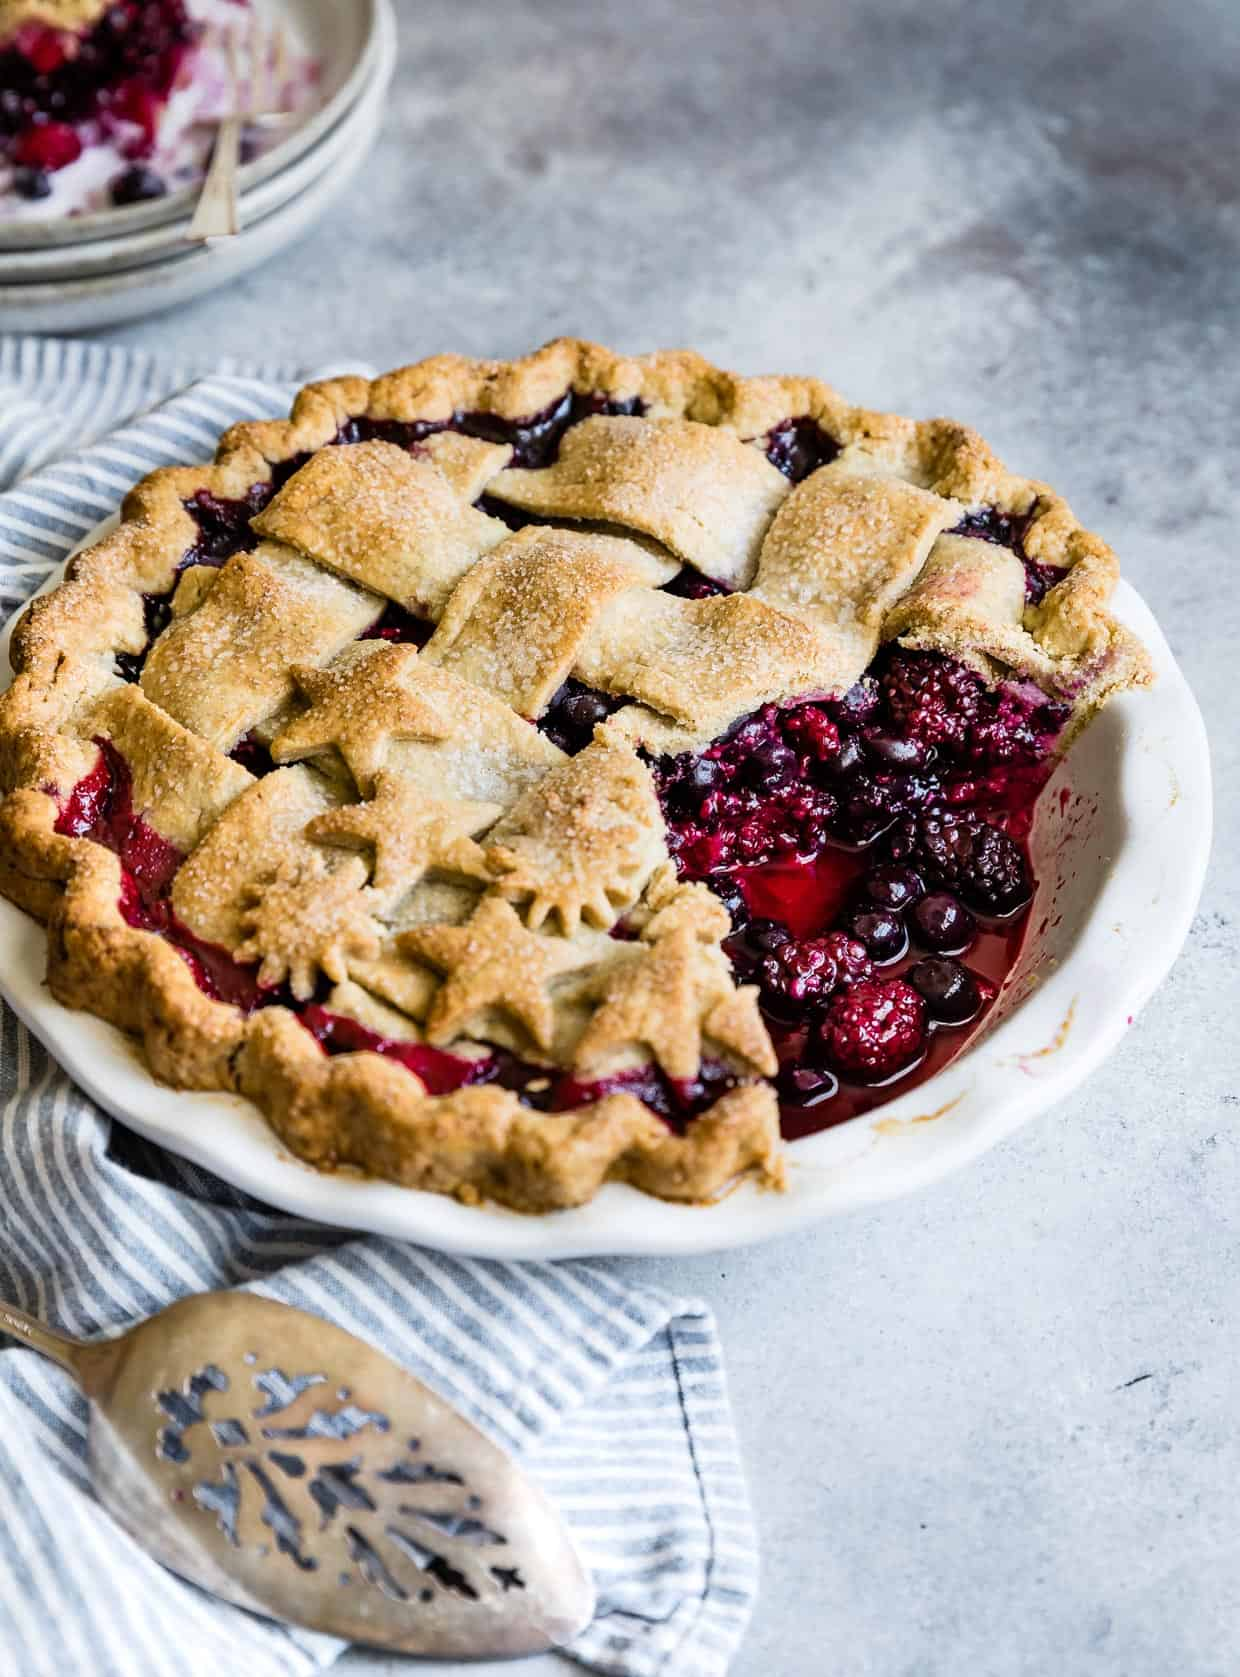 Triple Berry Pie Gluten-Free Cardamom Crust #pie #dessert #glutenfree #berry